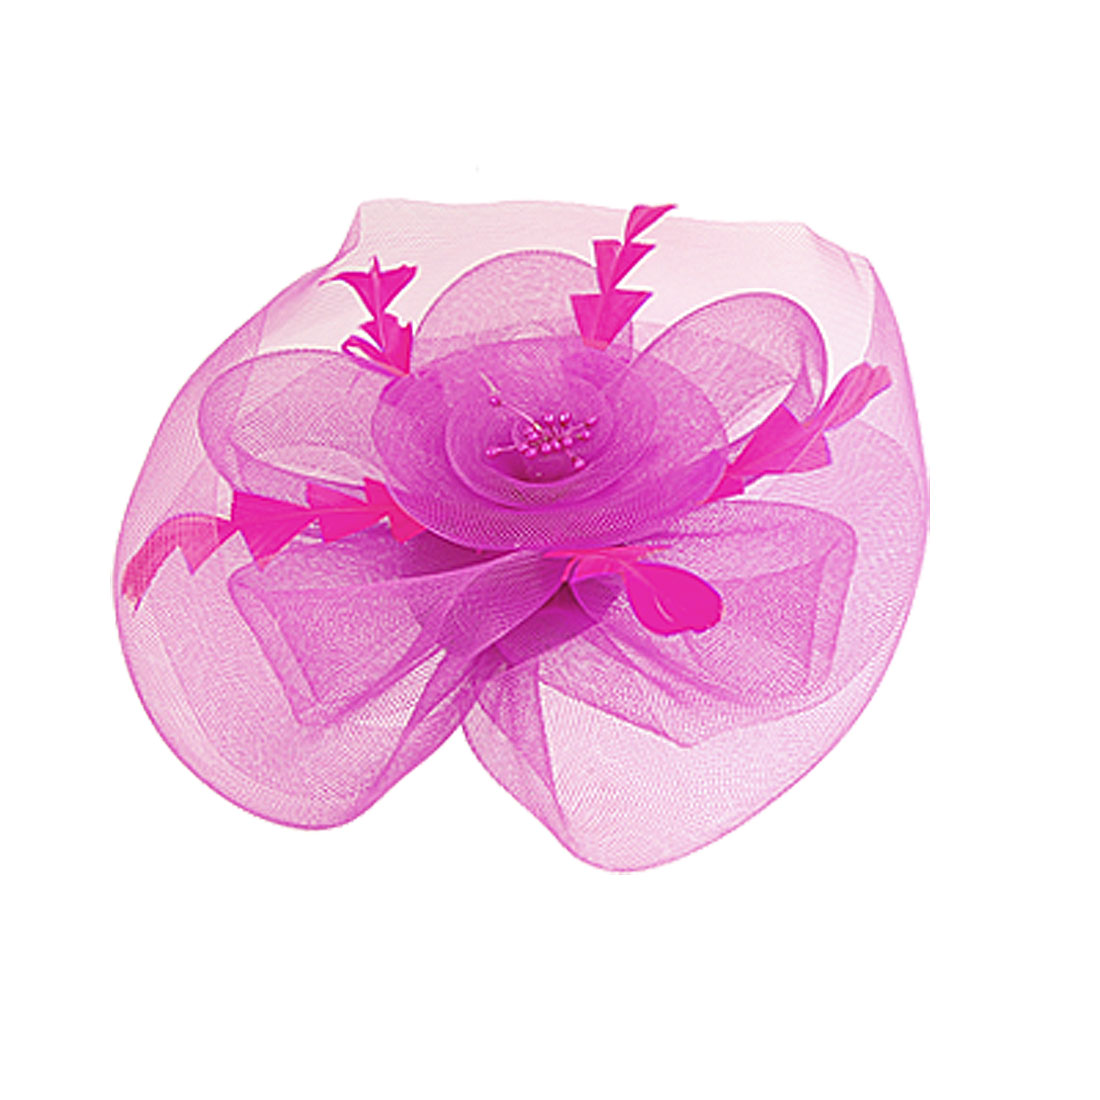 Ladies Fuchsia Nylon Meshed Flower Design Headwear Alligator Hair Clip